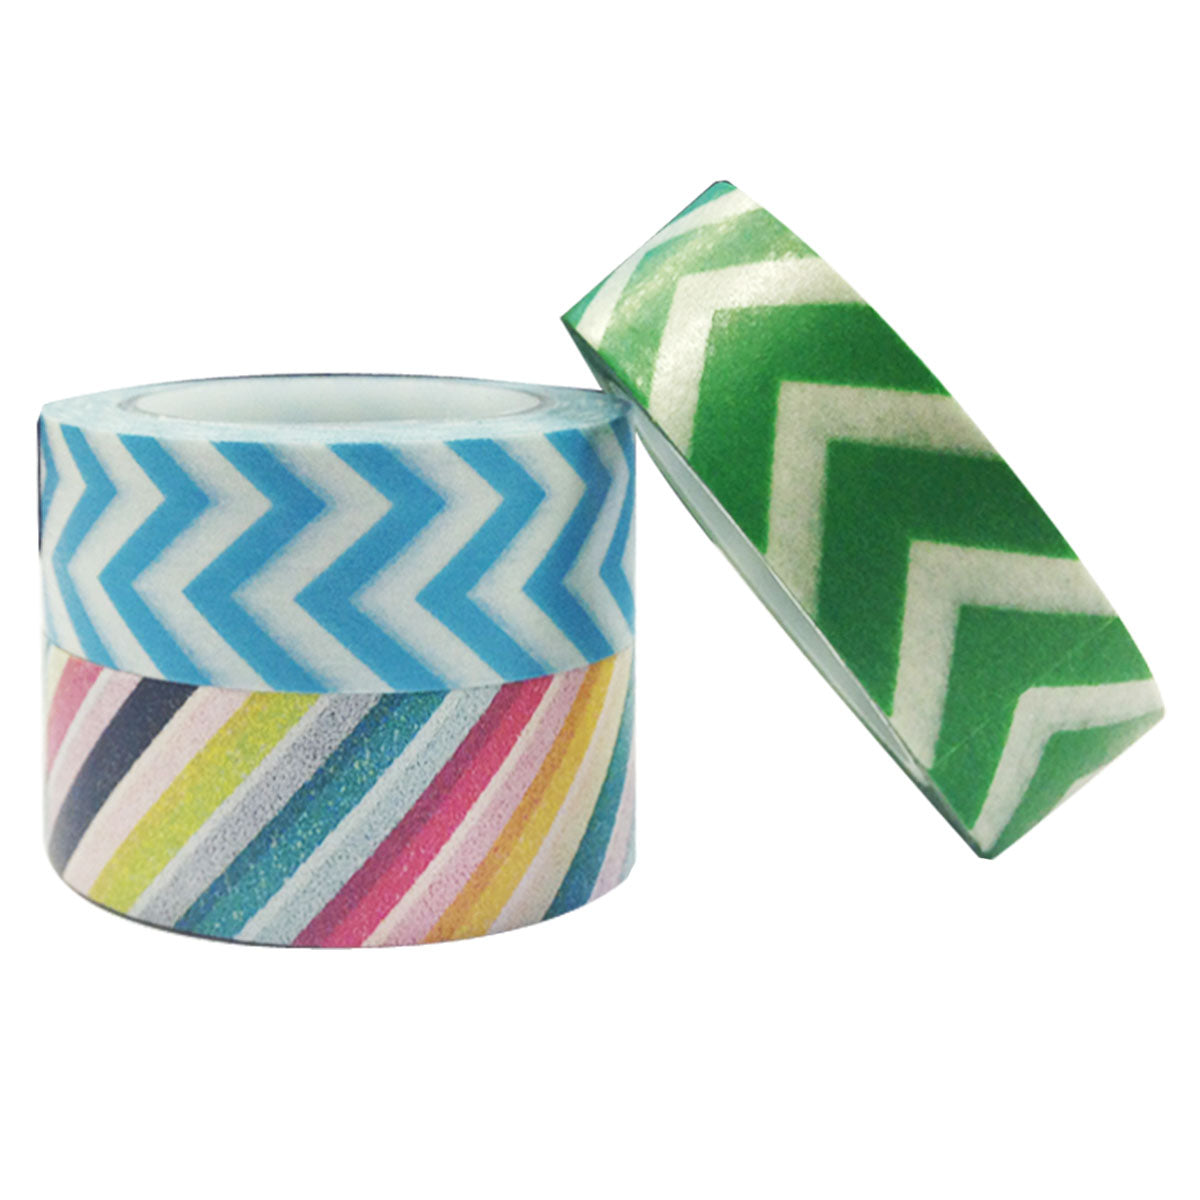 Wrapables Boardwalk Washi Masking Tape (set of 3)